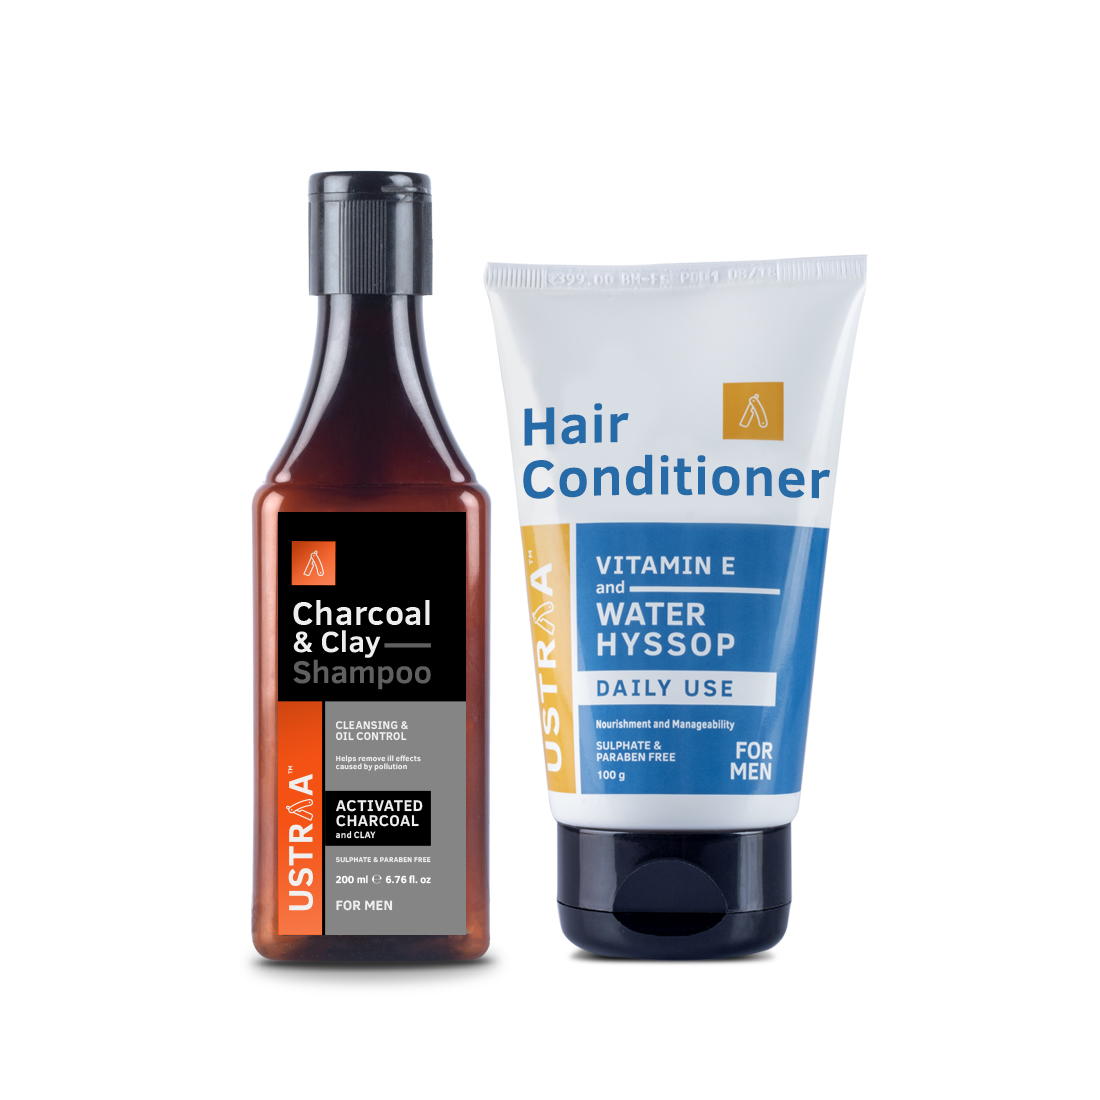 Clay & Charcoal Shampoo & Daily Use Hair Conditioner